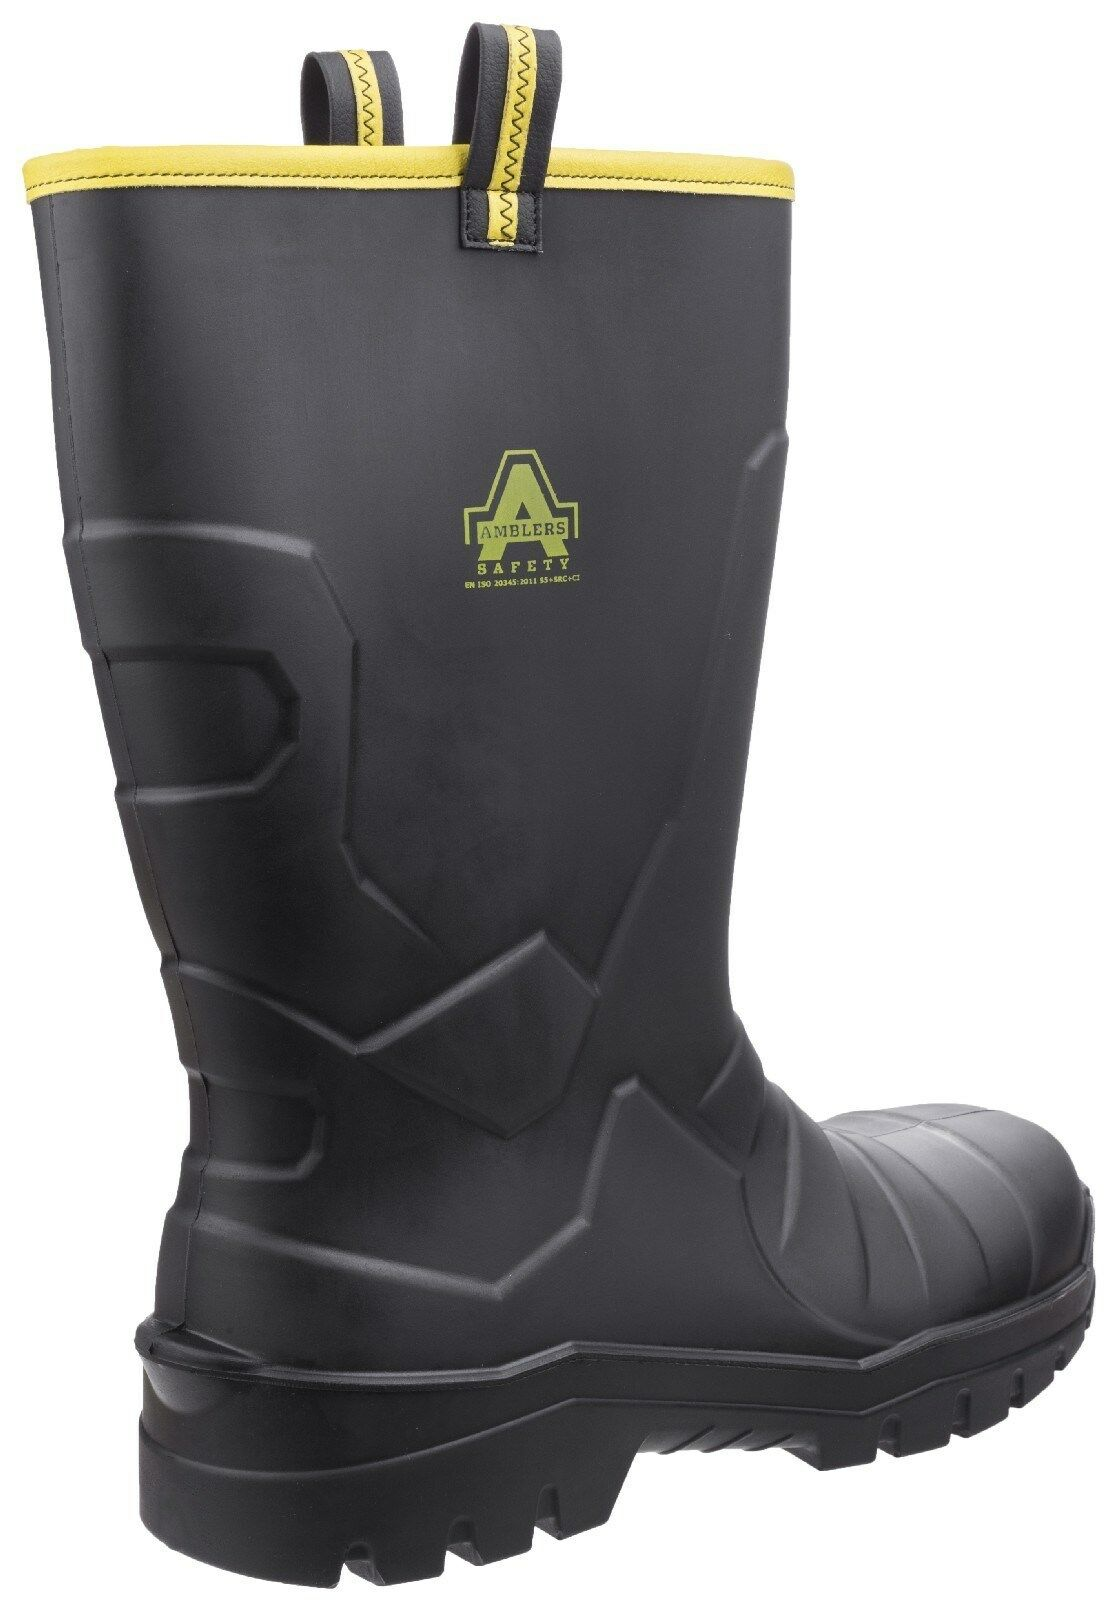 Amblers AS1008 Safety Wellingtons Steel Toe Cap Wellies Boots Mens Work Boots Wellies 2a9c1a